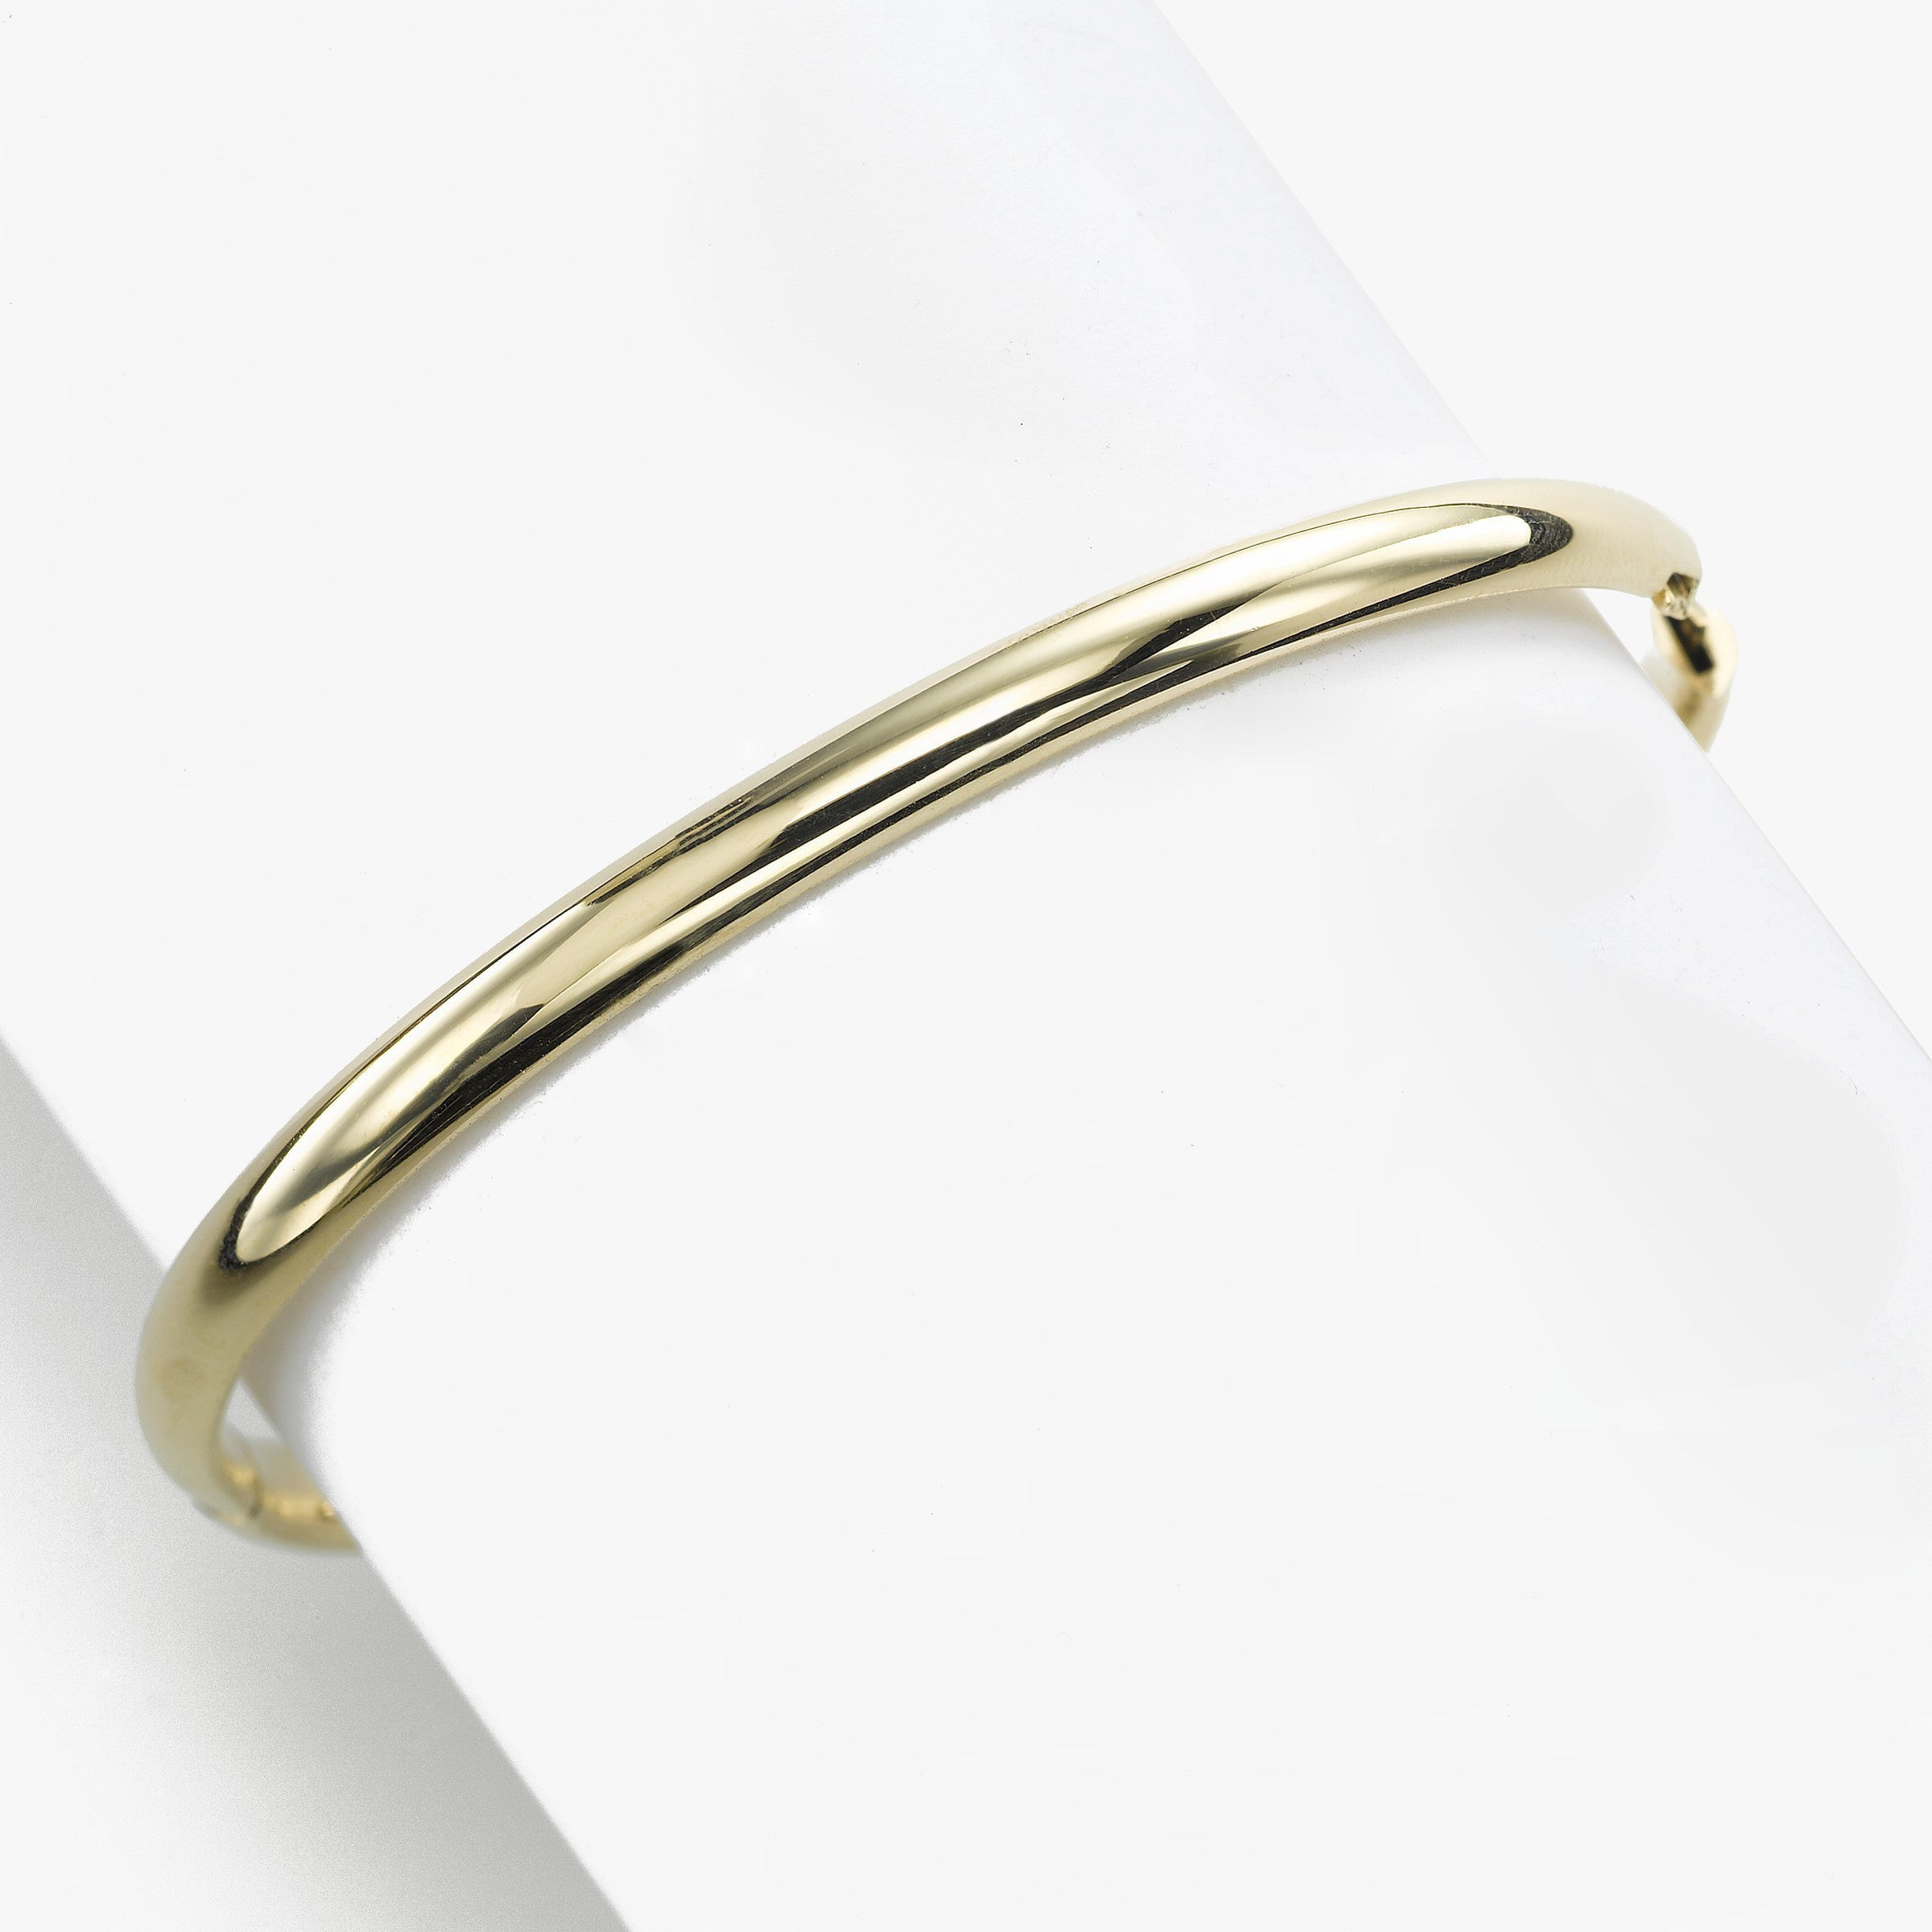 Shiny Domed Bangle Bracelet, .25 Inch, 14K Yellow Gold